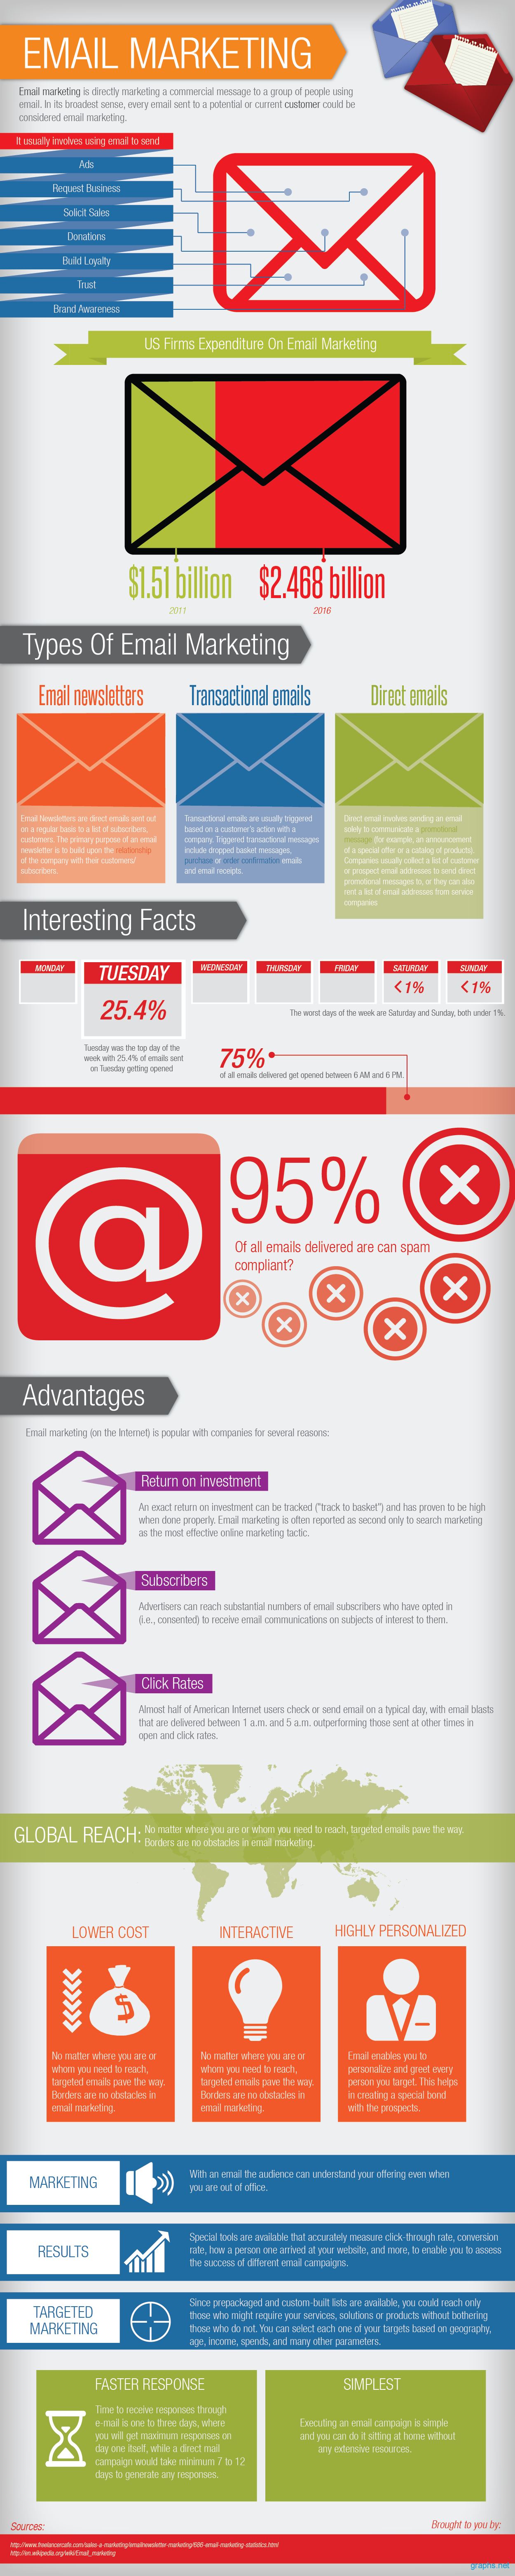 Online Advertising Email Marketing